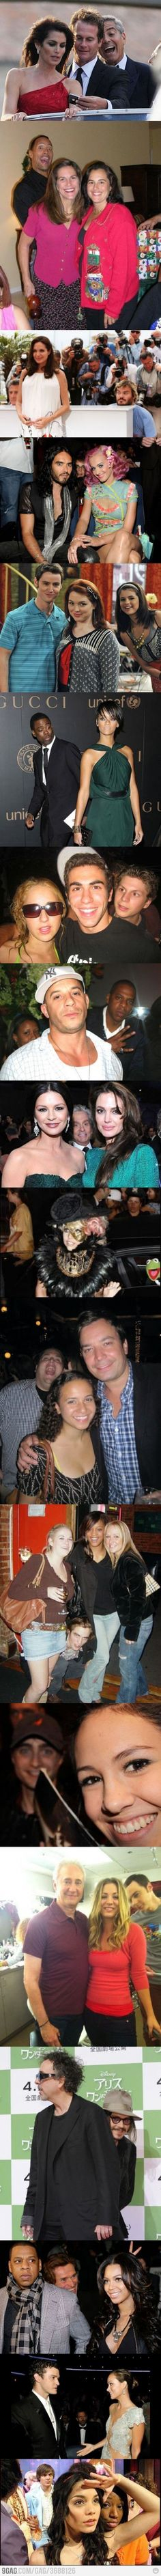 Celebrity Photobombs.  I think Johnny Depp and Zac Efron are the funniest, but they're all pretty good.